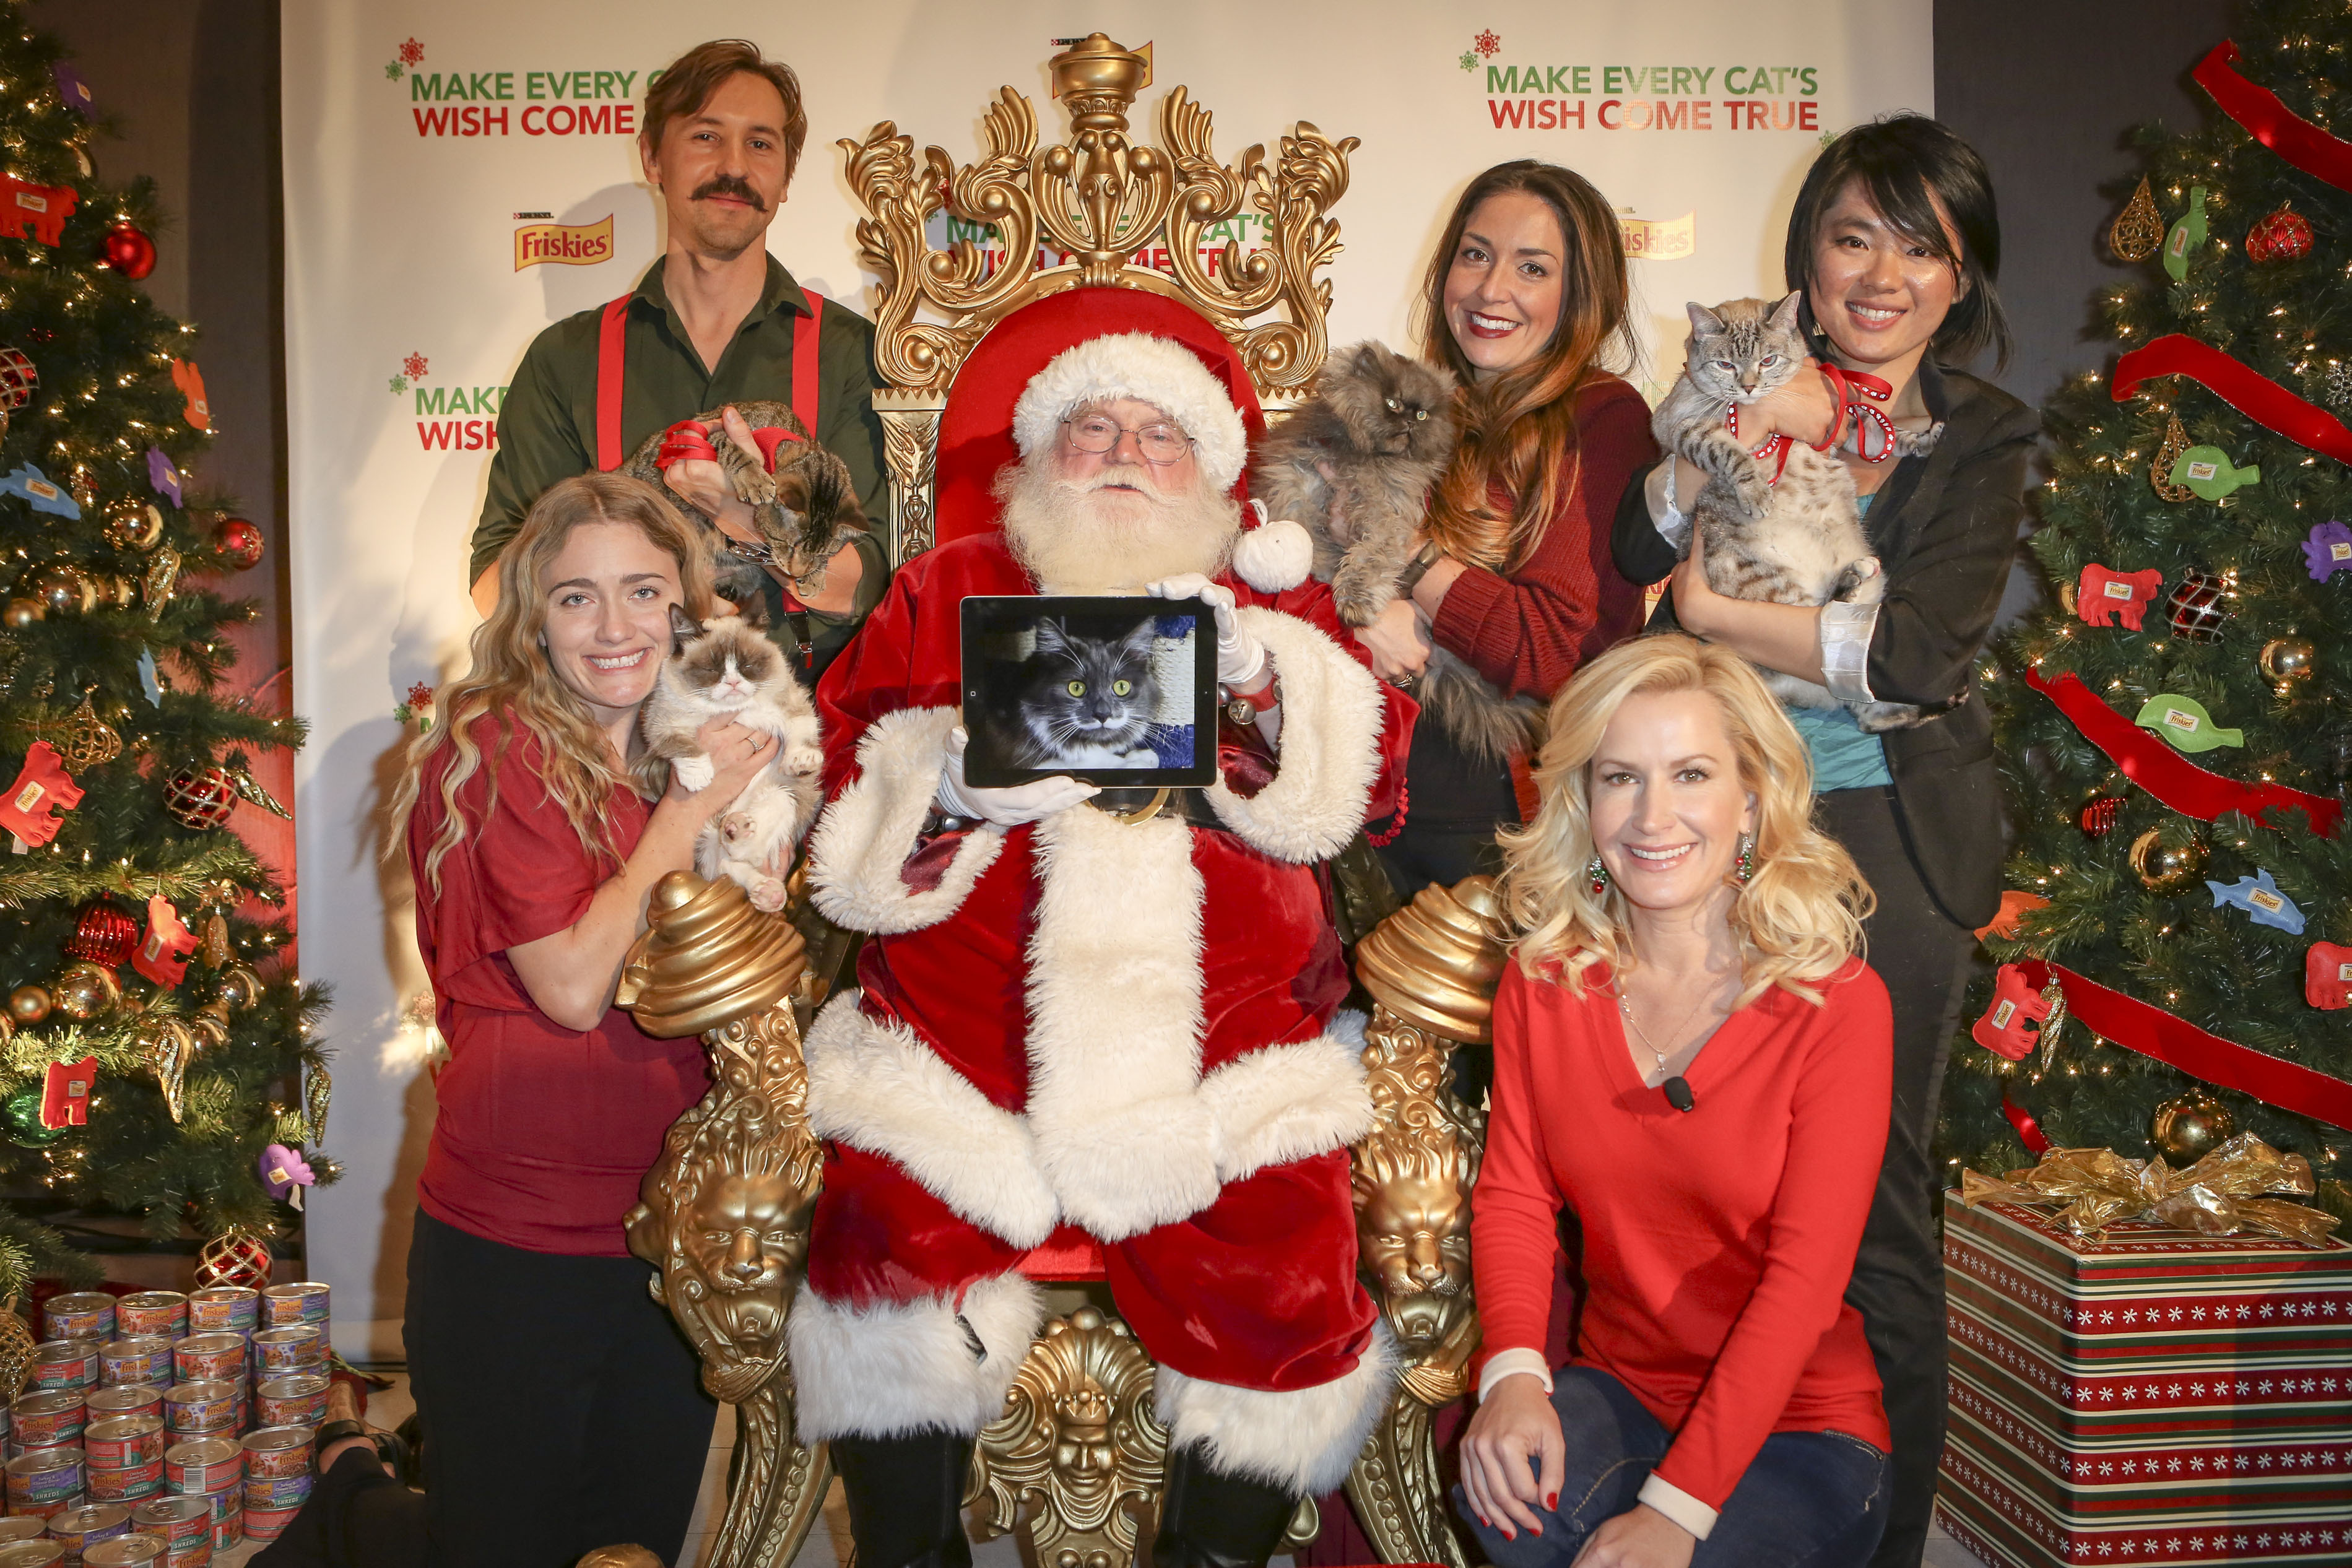 "Actress and cat lover Angela Kinsey introduced Internet cat sensations Grumpy Cat, Colonel Meow, Nala Cat, Hamilton the Hipster Cat and Oskar the Blind Cat at an event by Friskies to debut their holiday music video ""Hard to Be a Cat at Christmas"" in support of wet cat food for all cats this holiday season, Tuesday, Dec. 10, 2013, at Capitol Records in Los Angeles. The video can be viewed at www.friskies.com/holiday (Bret Hartman/AP Images for Friskies)"